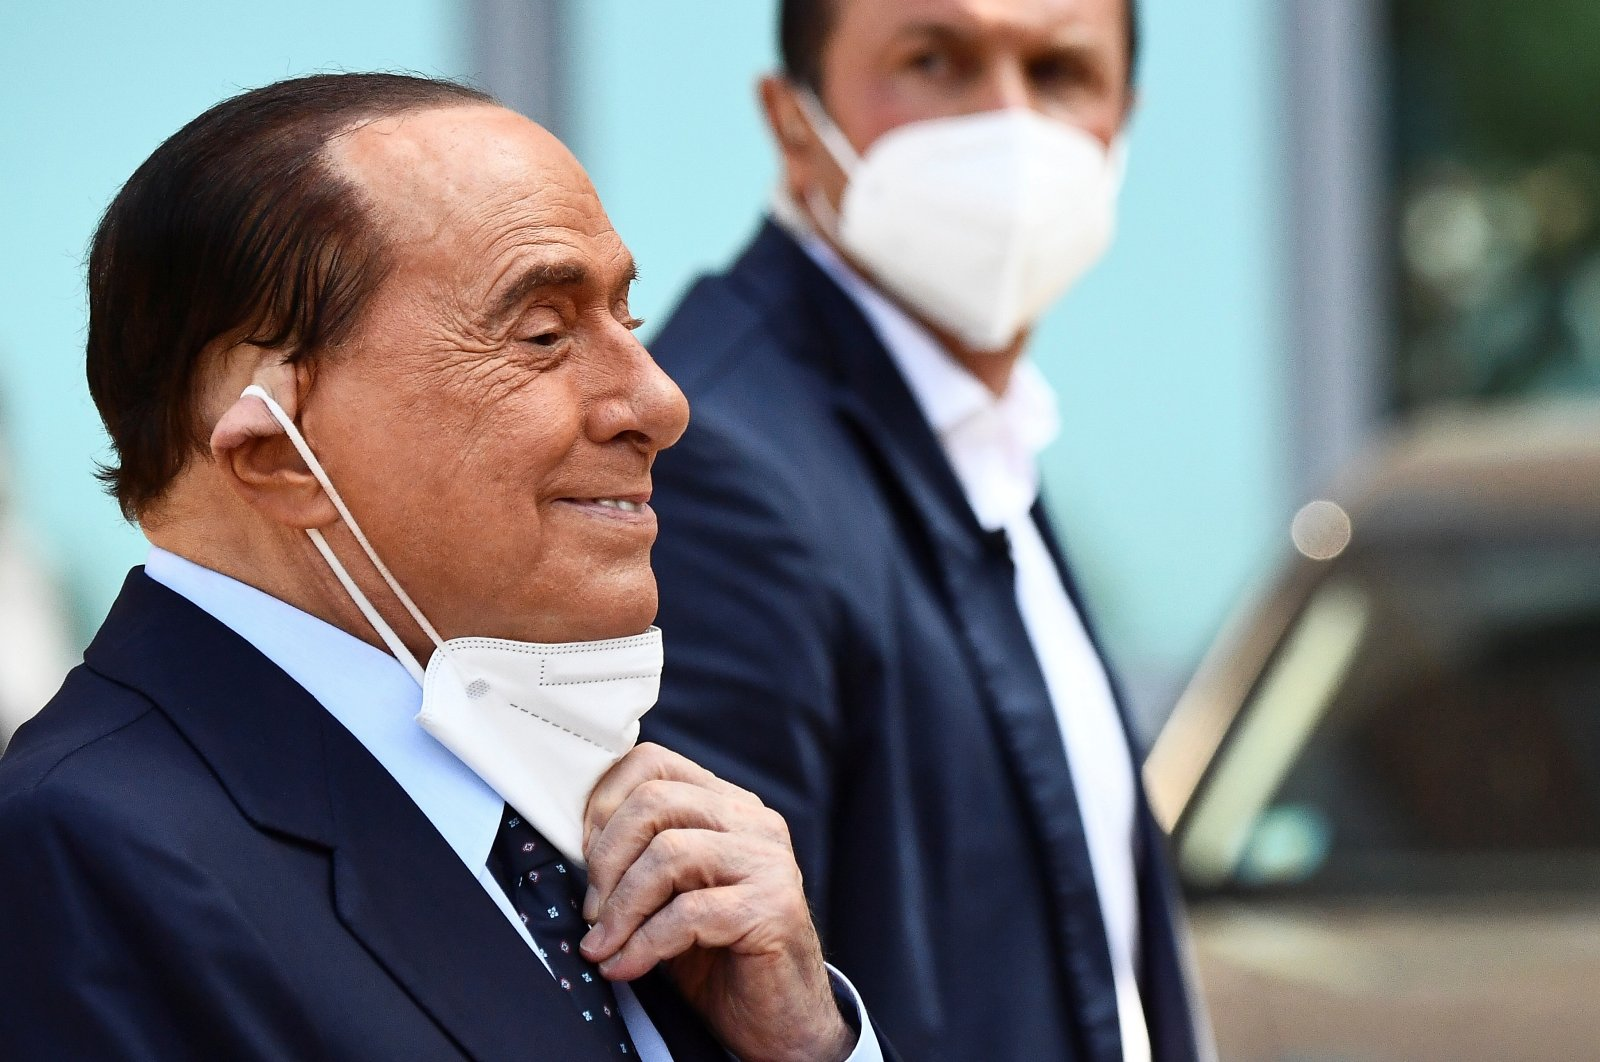 Former Italian Prime Minister Silvio Berlusconi adjusts his protective mask as he leaves Milan's San Raffaele hospital, where he was being treated after testing positive for the coronavirus and diagnosed with mild pneumonia, in Milan, Italy, Sept. 14, 2020. (Reuters Photo)